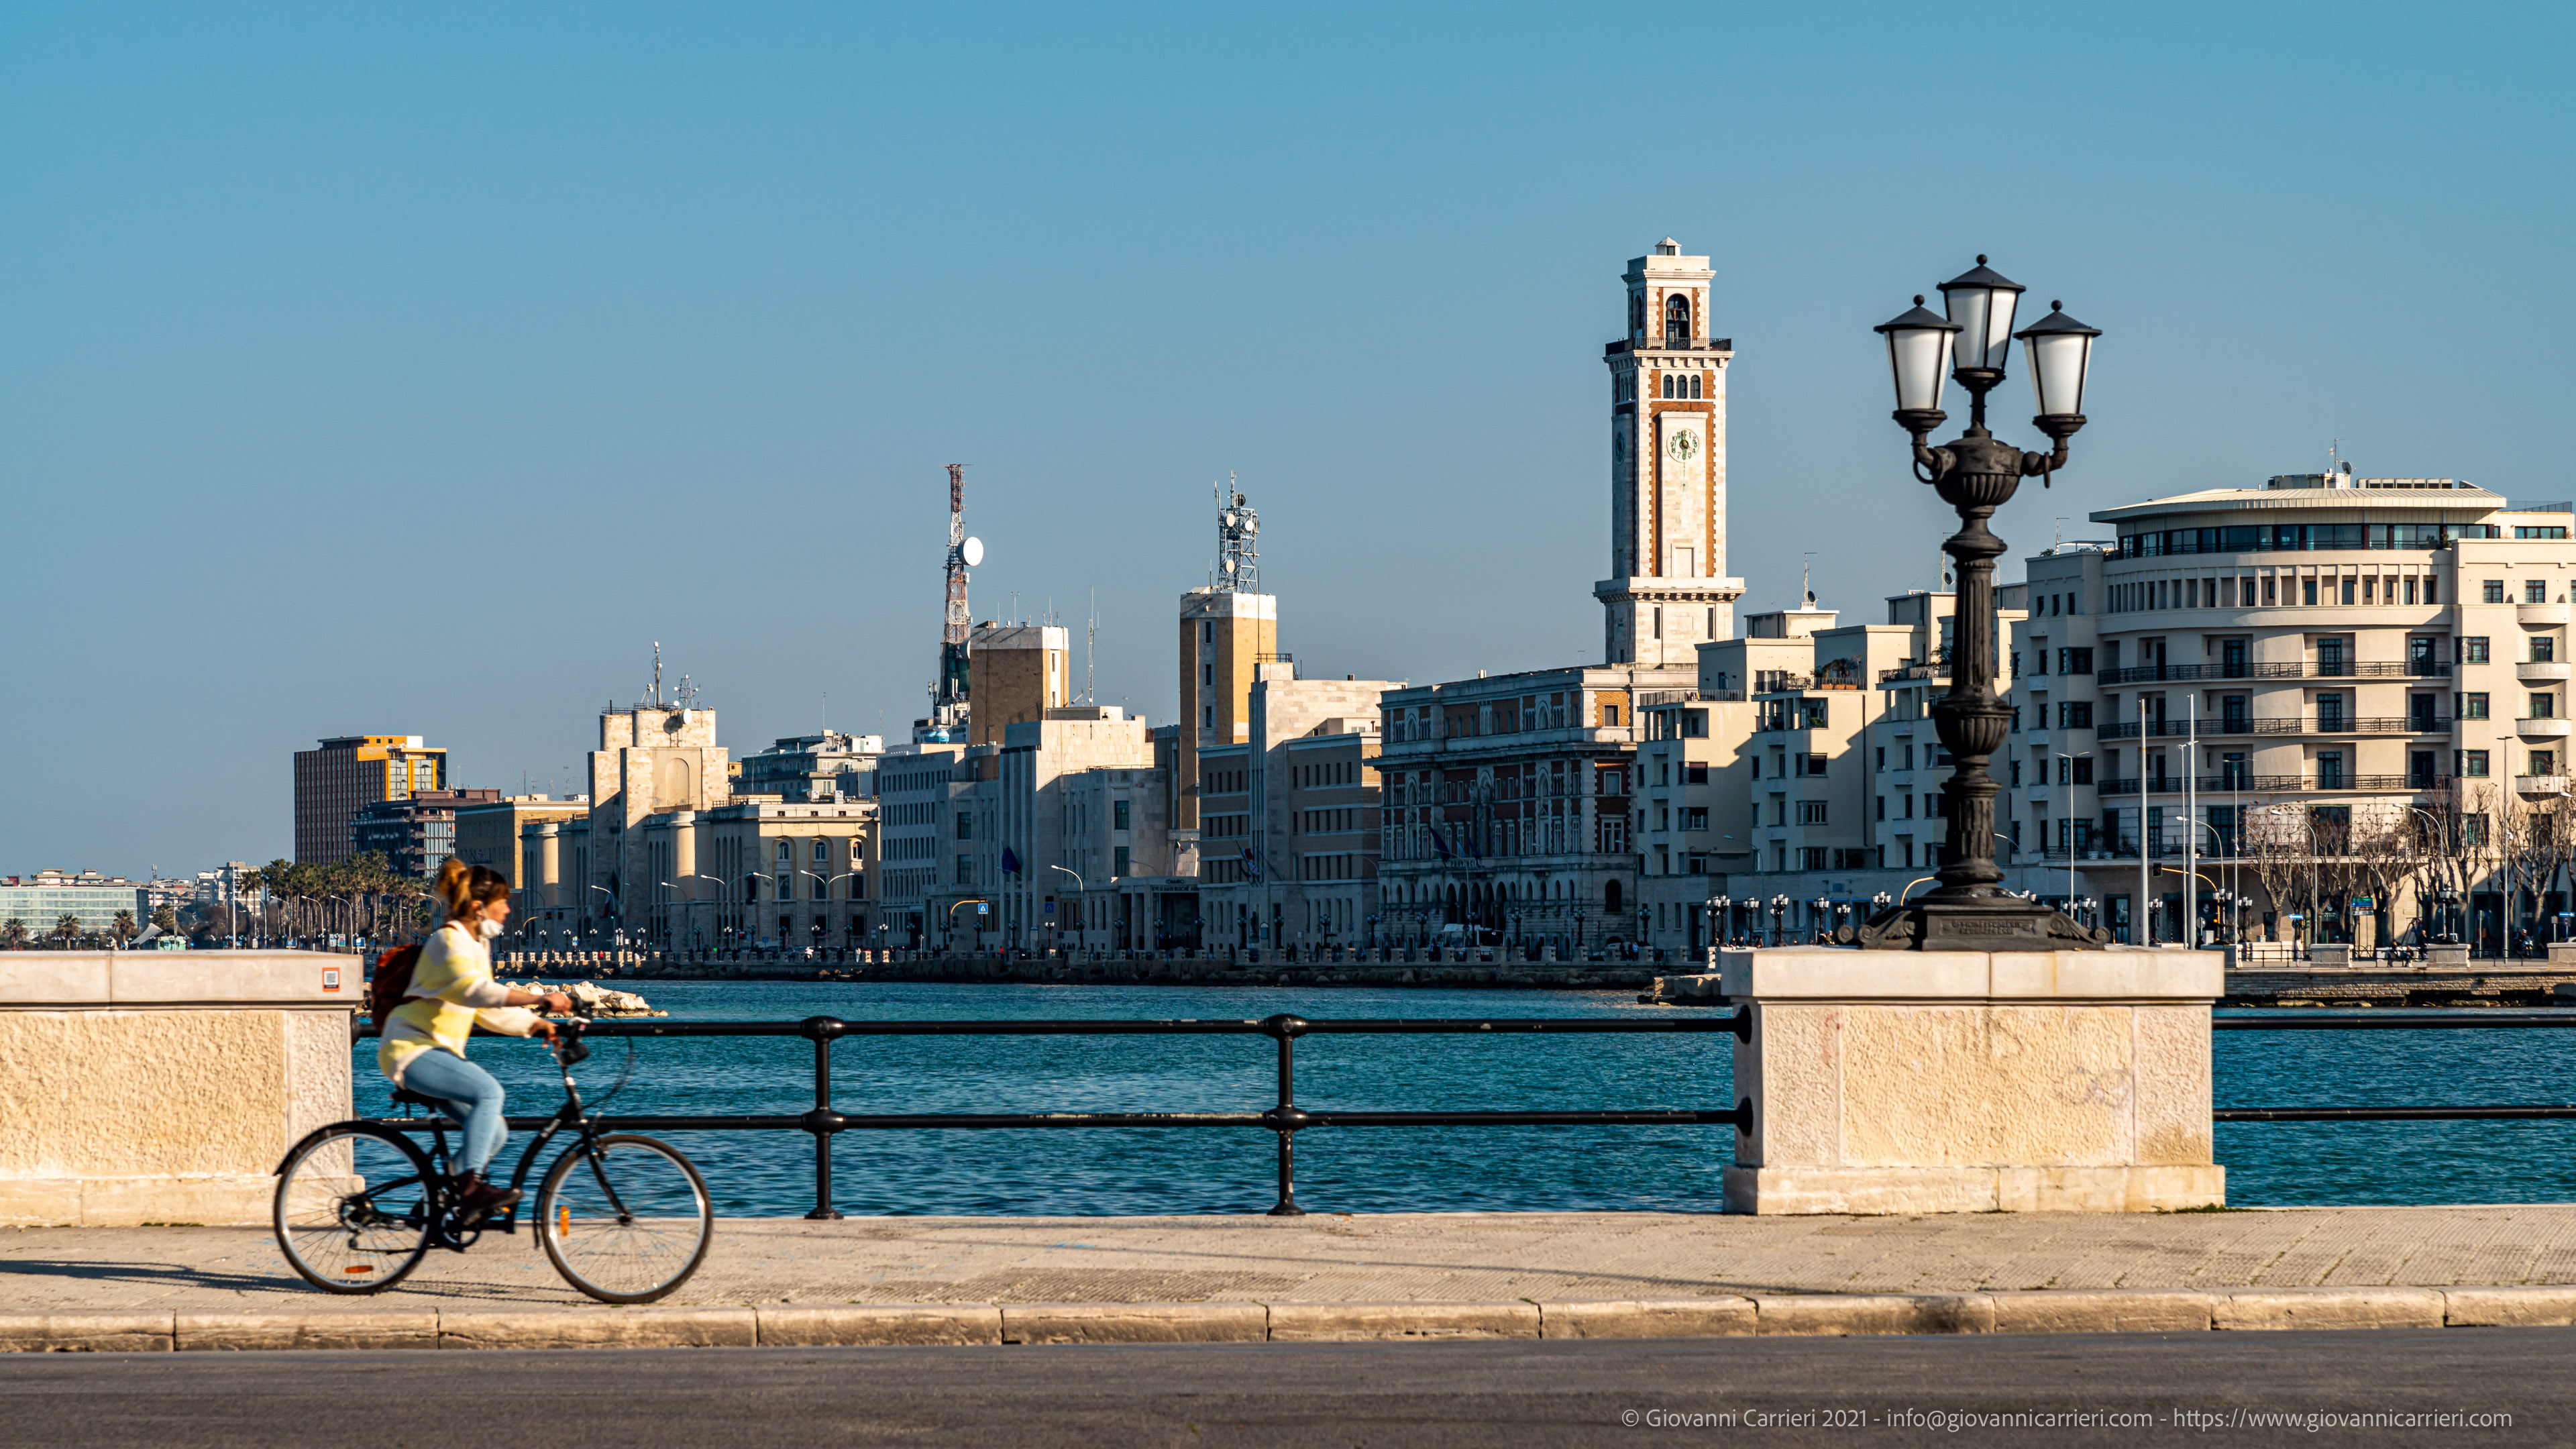 The bicycle, the covid, and the waterfront of Bari The bicycle, the covid, and the Bari waterfront without the benches